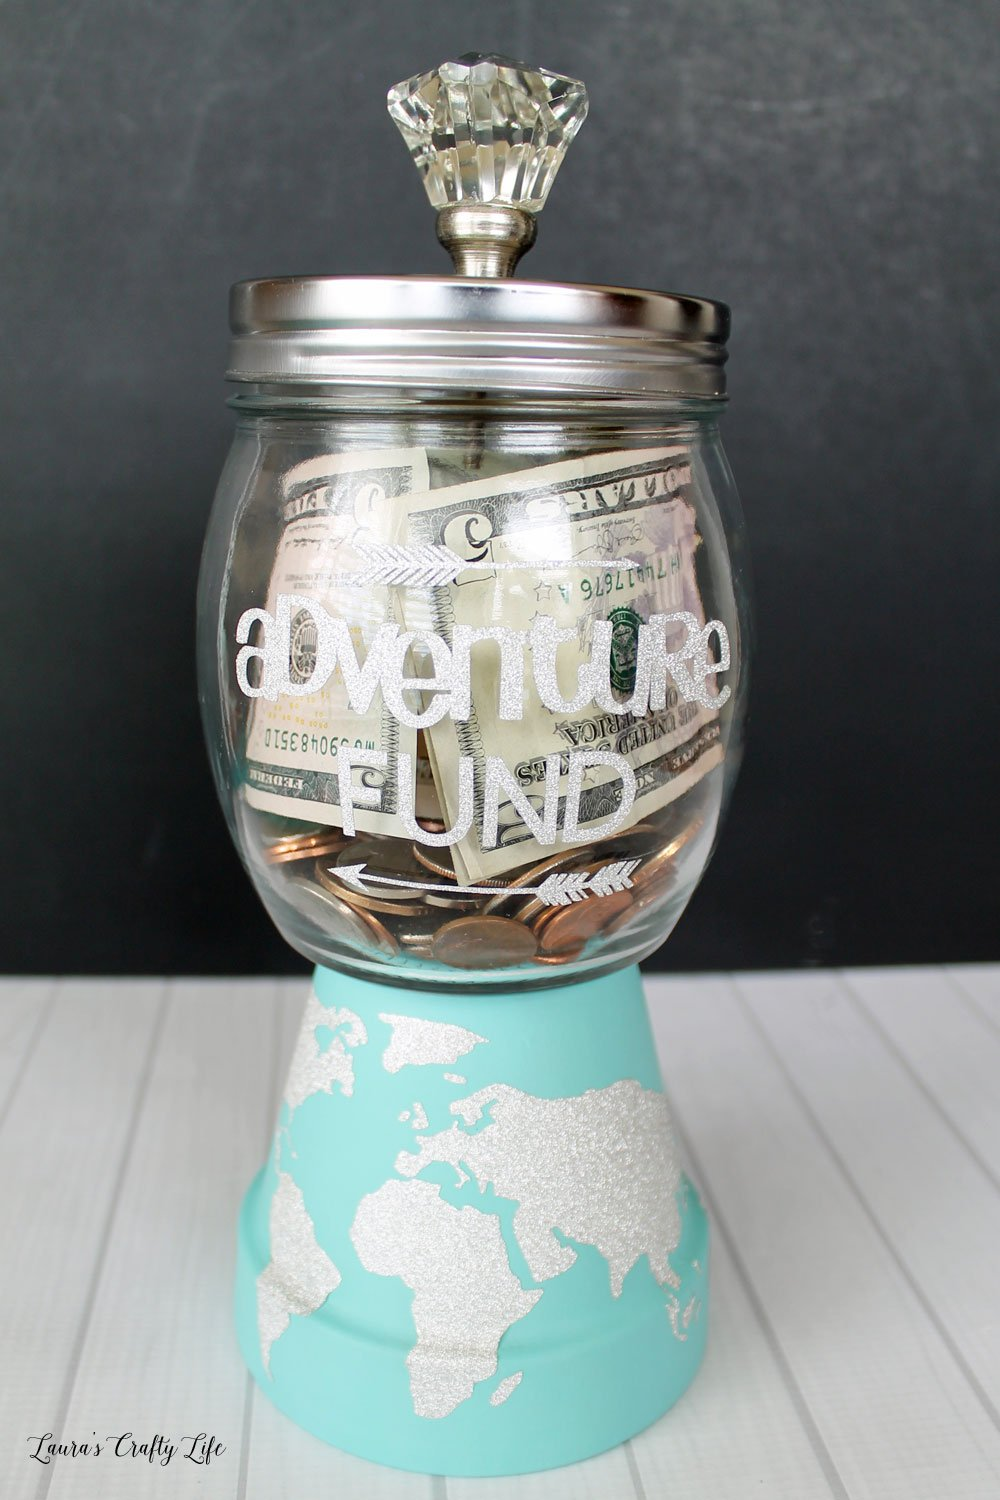 Travel Savings Jar tutorial